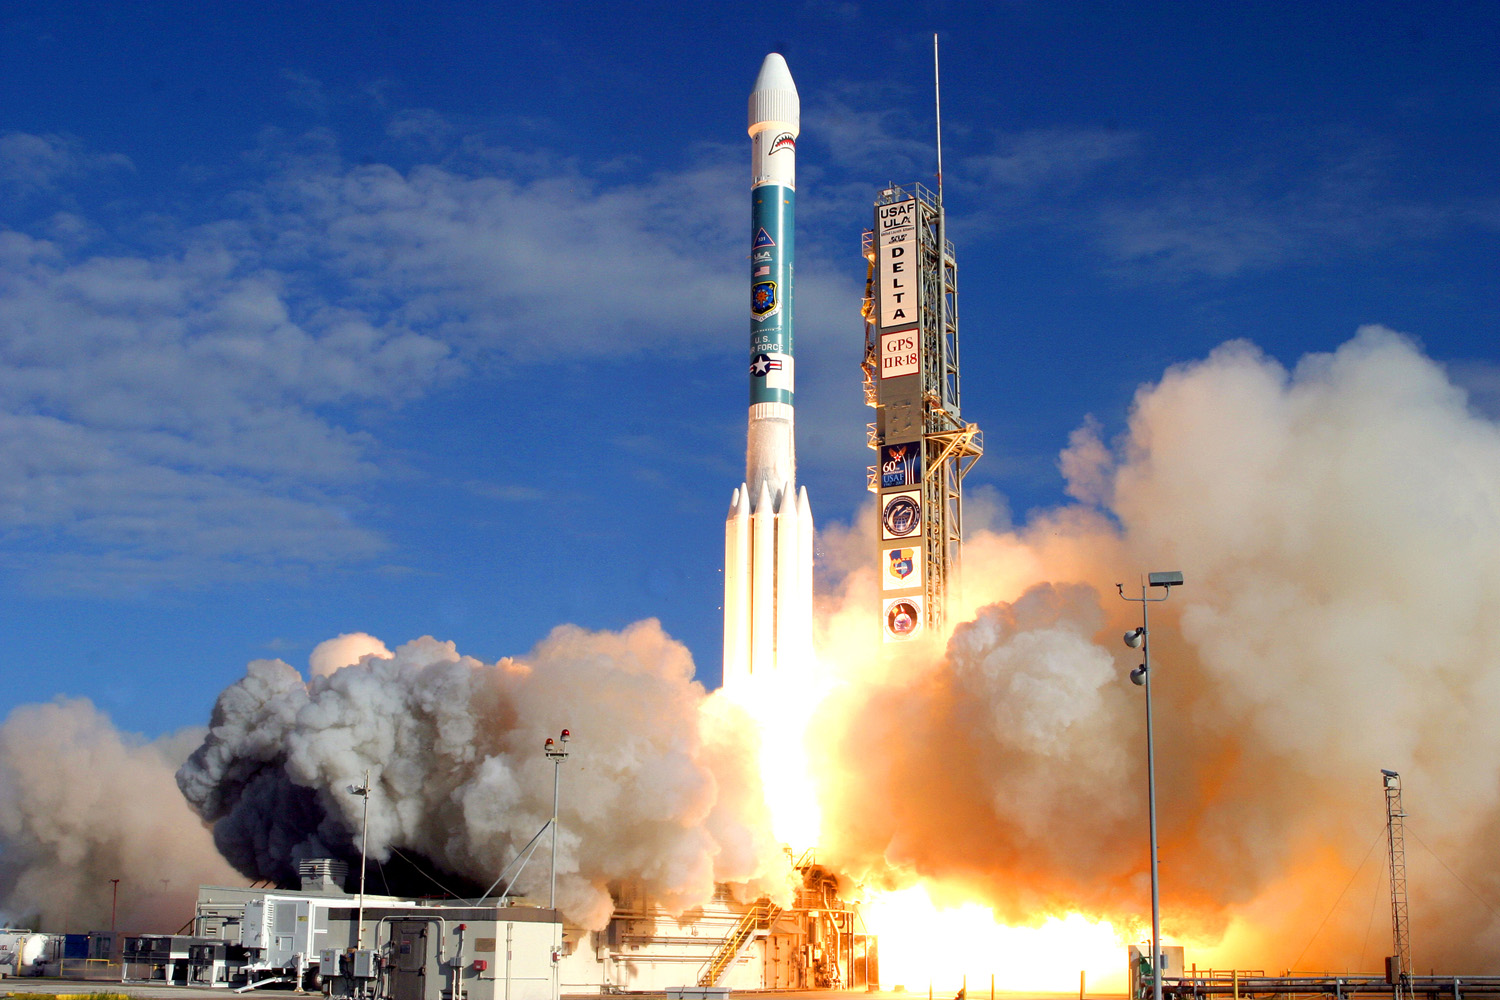 Successful Gps Iir 18 M Launch From Cape Canaveral Afs Air Force